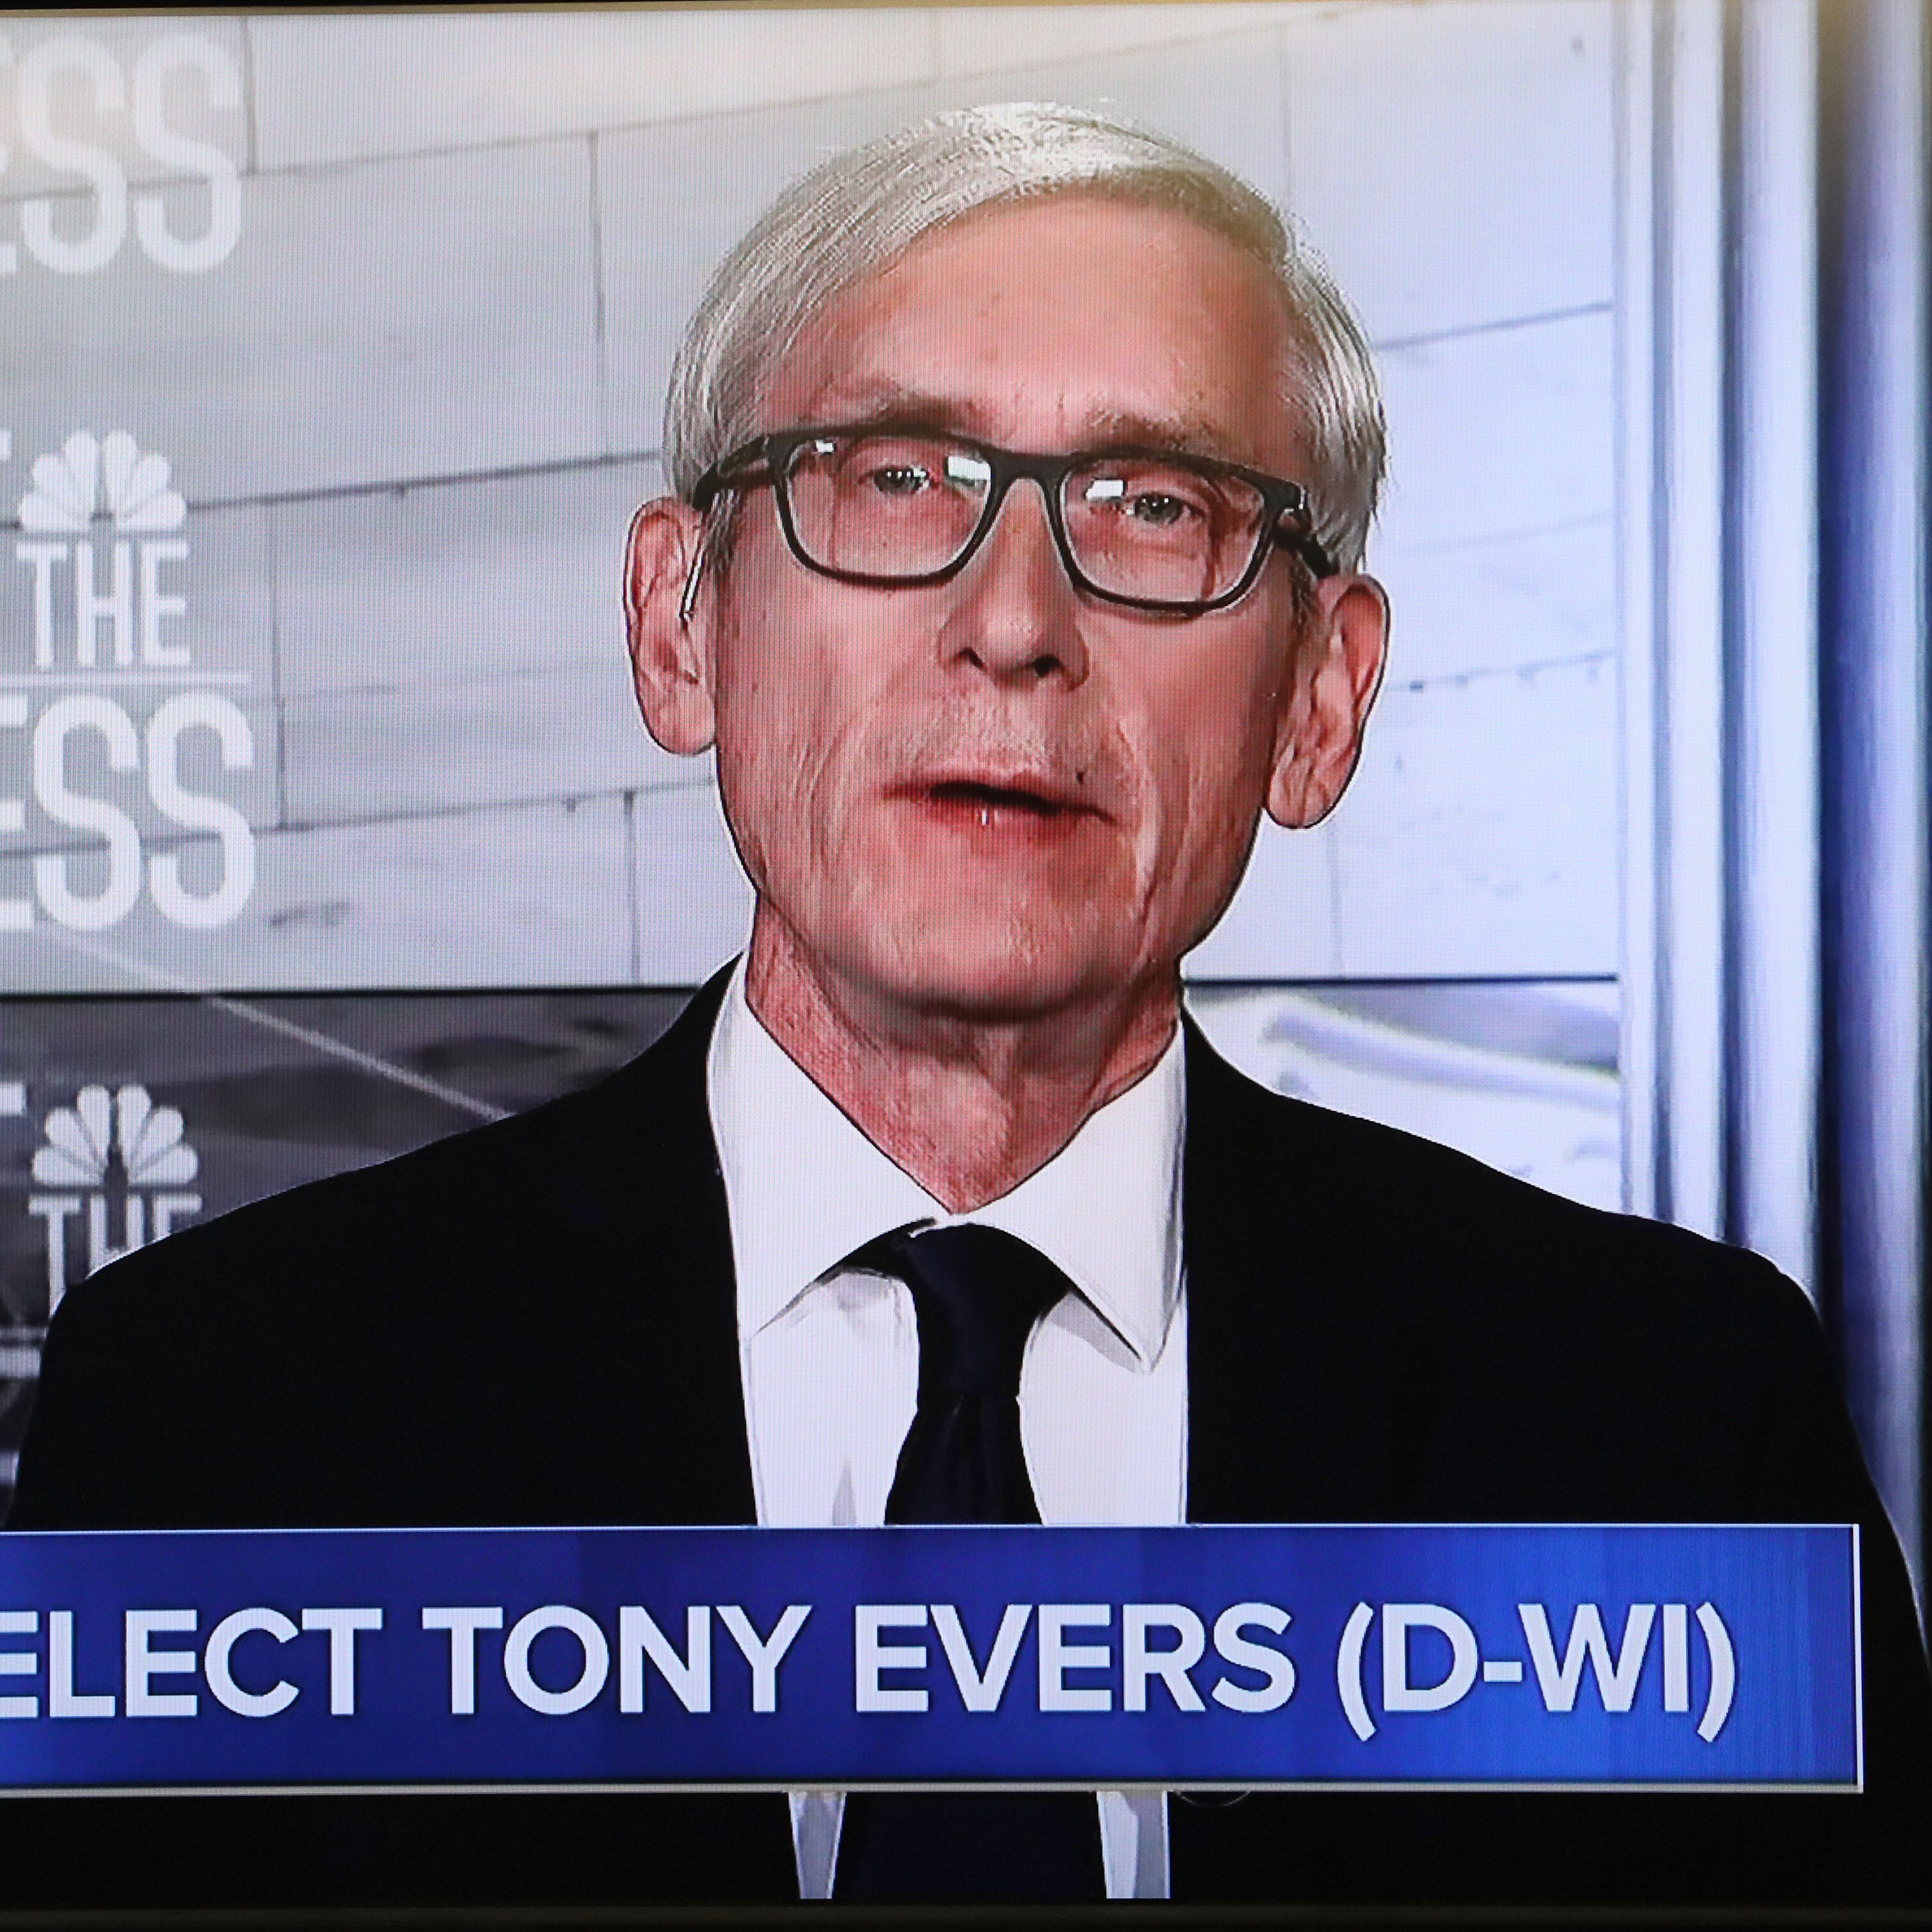 'It's a hot mess': Tony Evers urges Scott Walker to veto GOP lame duck proposals limiting his powers on 'Meet the Press'